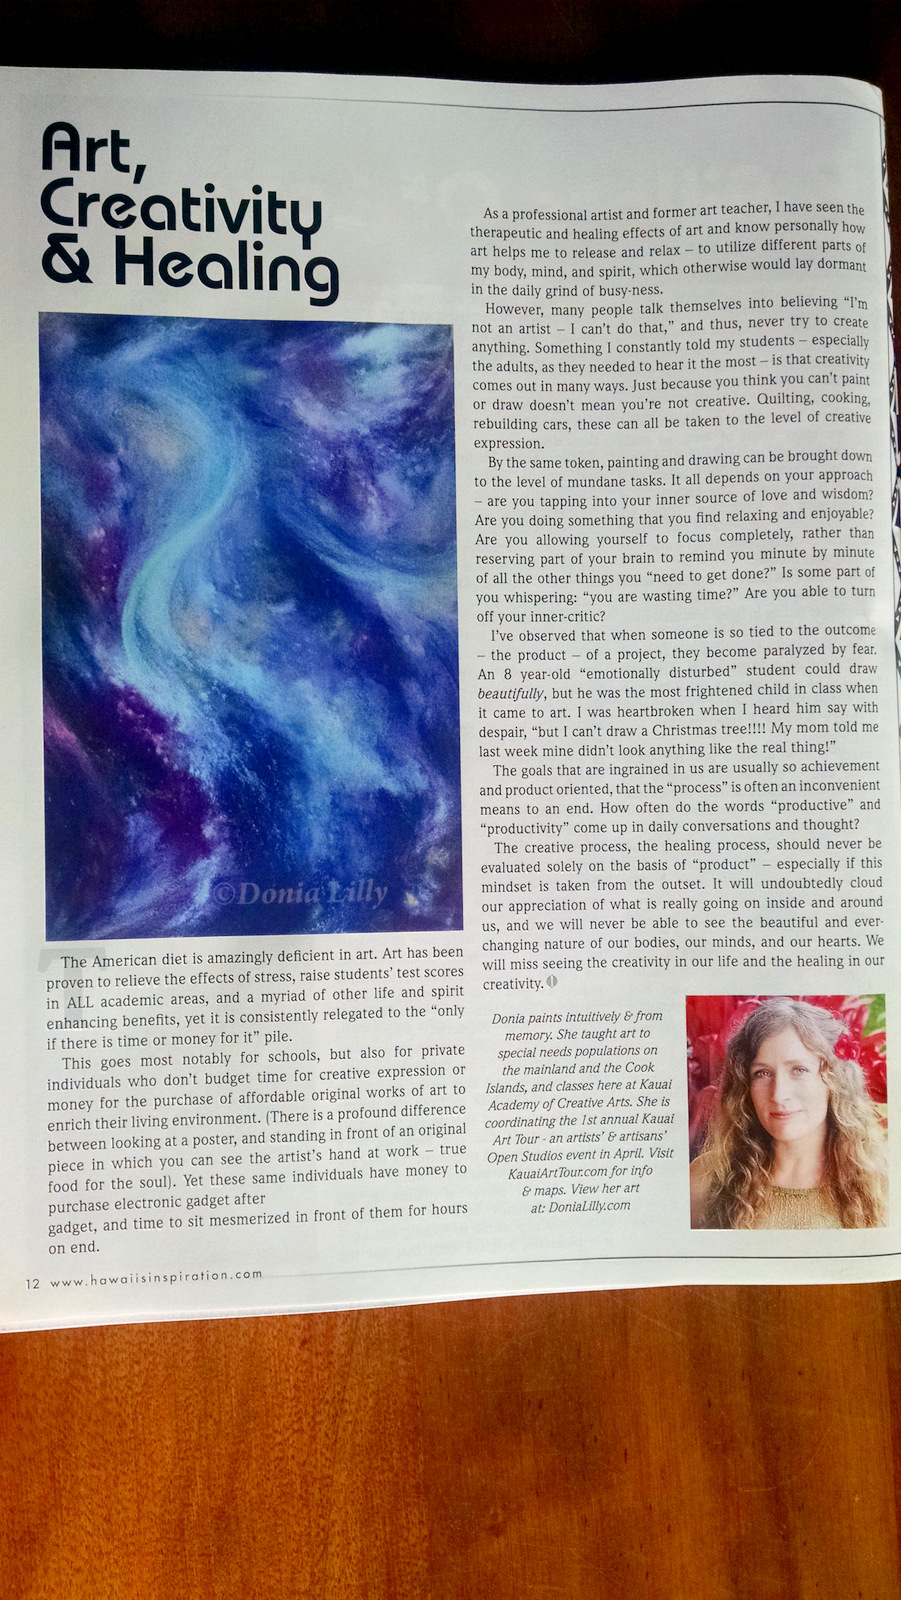 Art Creativity Healing article by Donia Lilly in Hawaii's Inspiration Magazine spring 2015